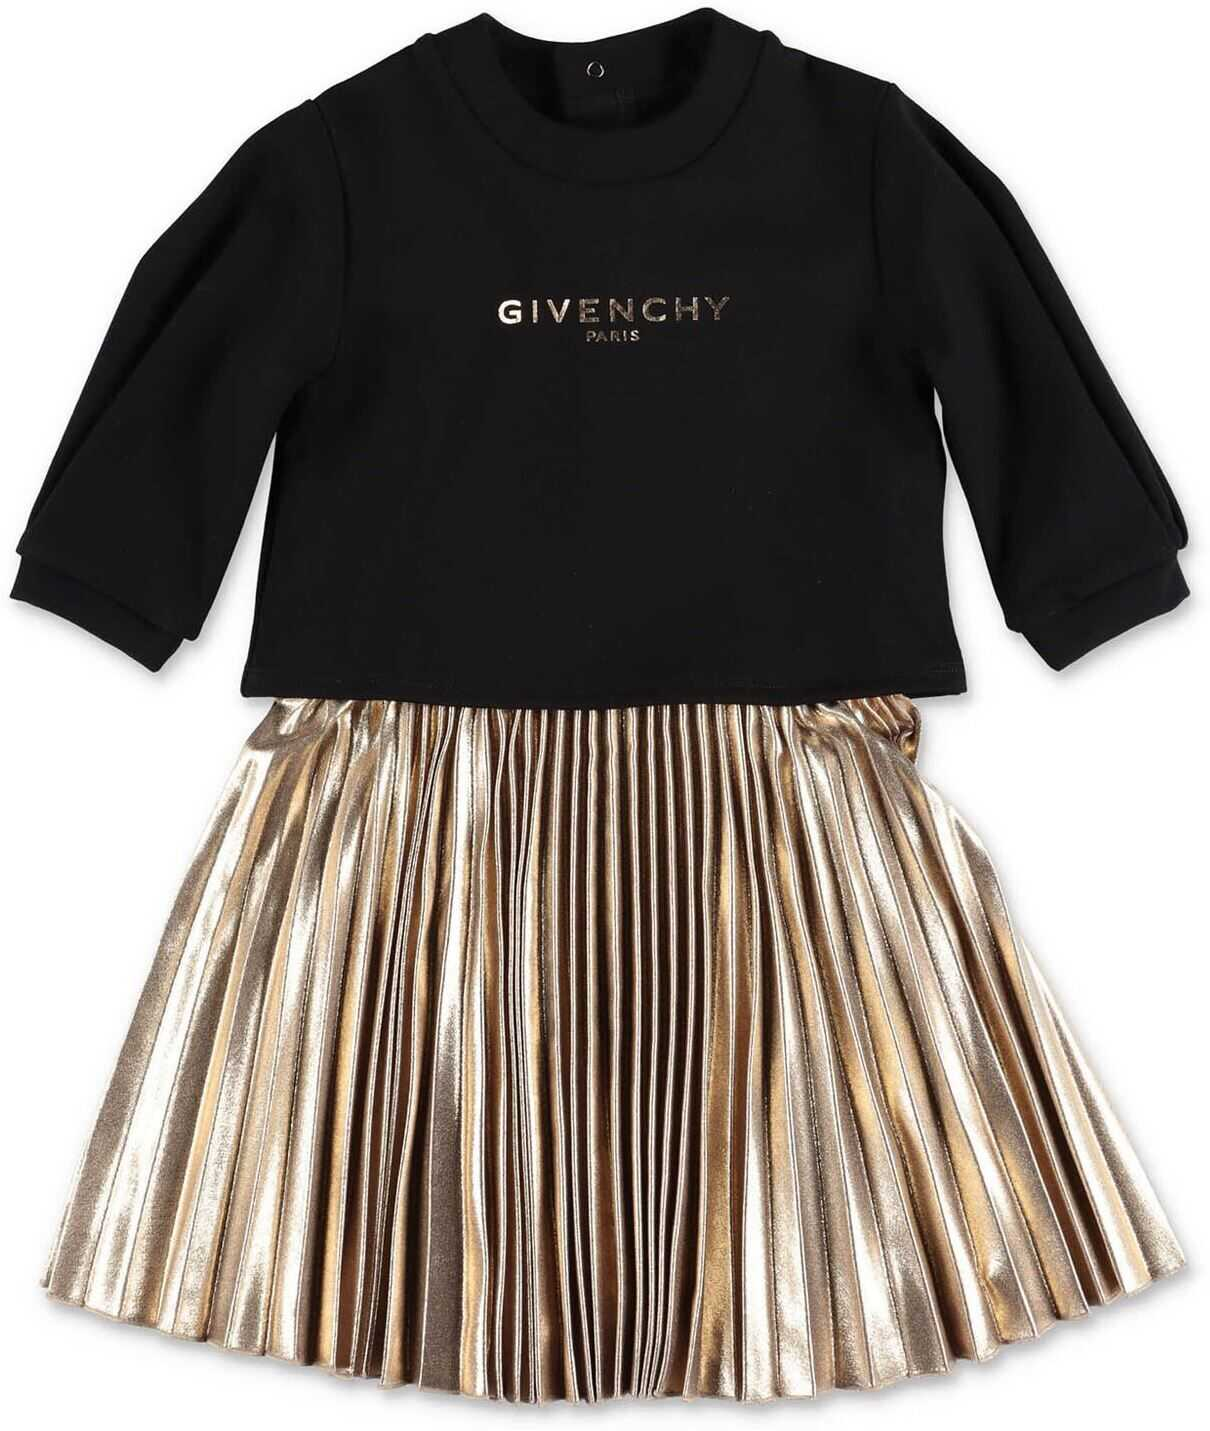 Givenchy Dress And Sweatshirt Set In Black And Gold Black